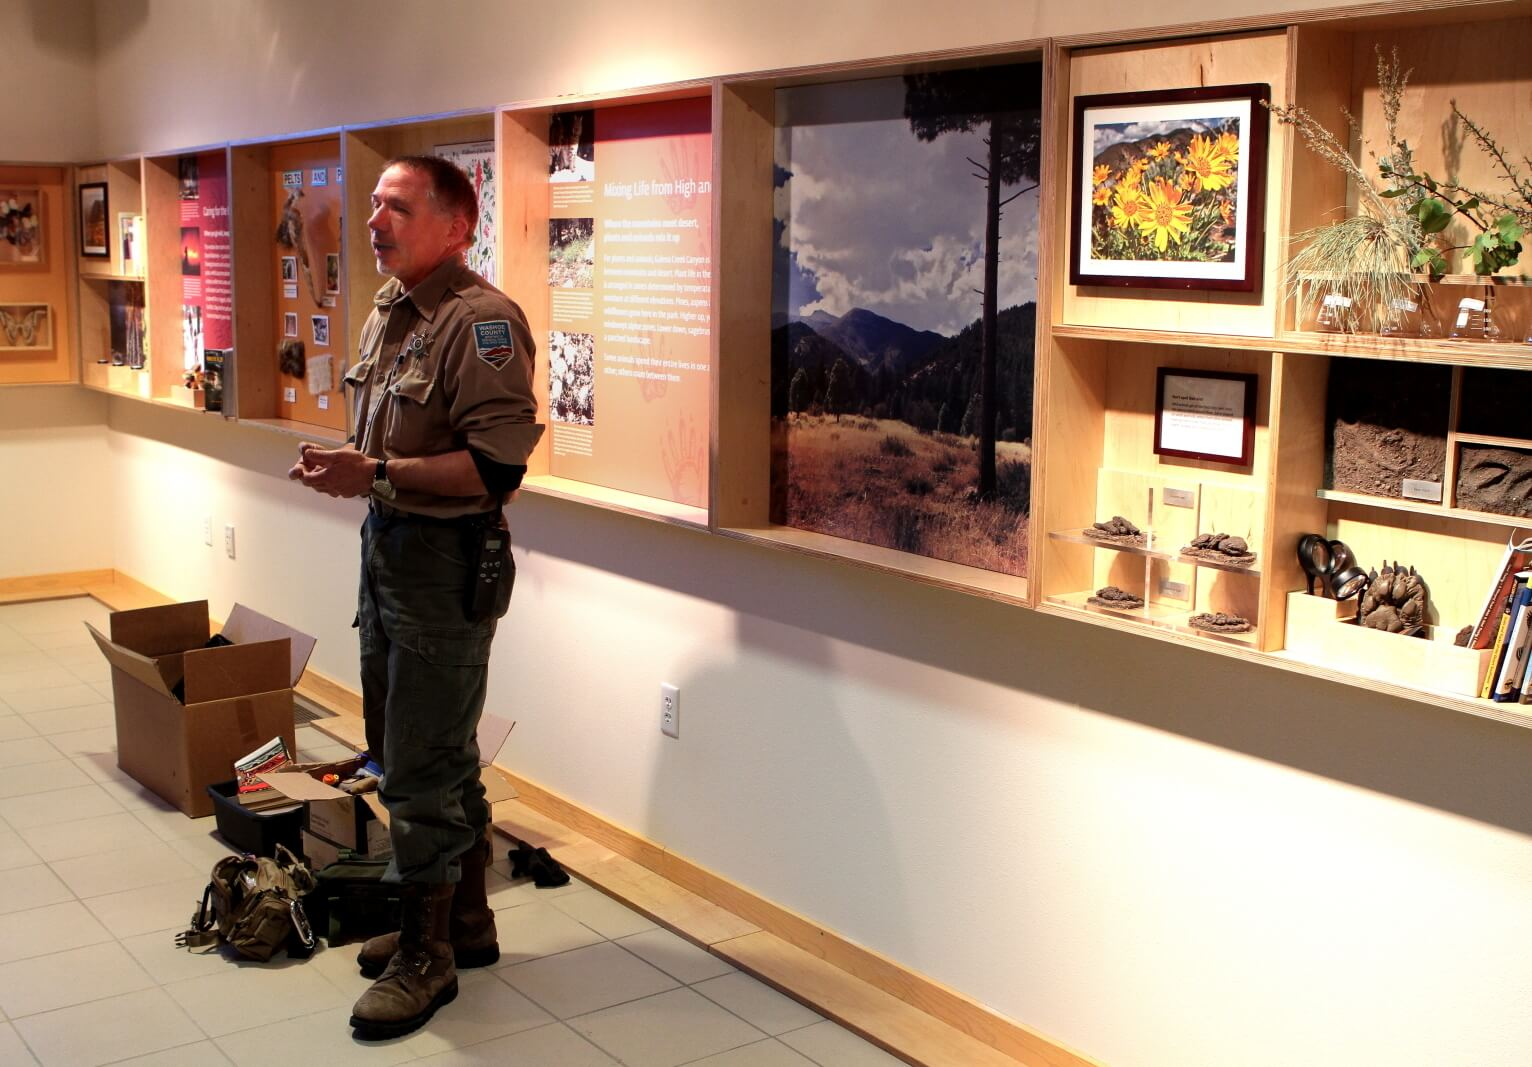 6-Galena Creek Visitor Center-Ranger-The Sibbett Group.jpg